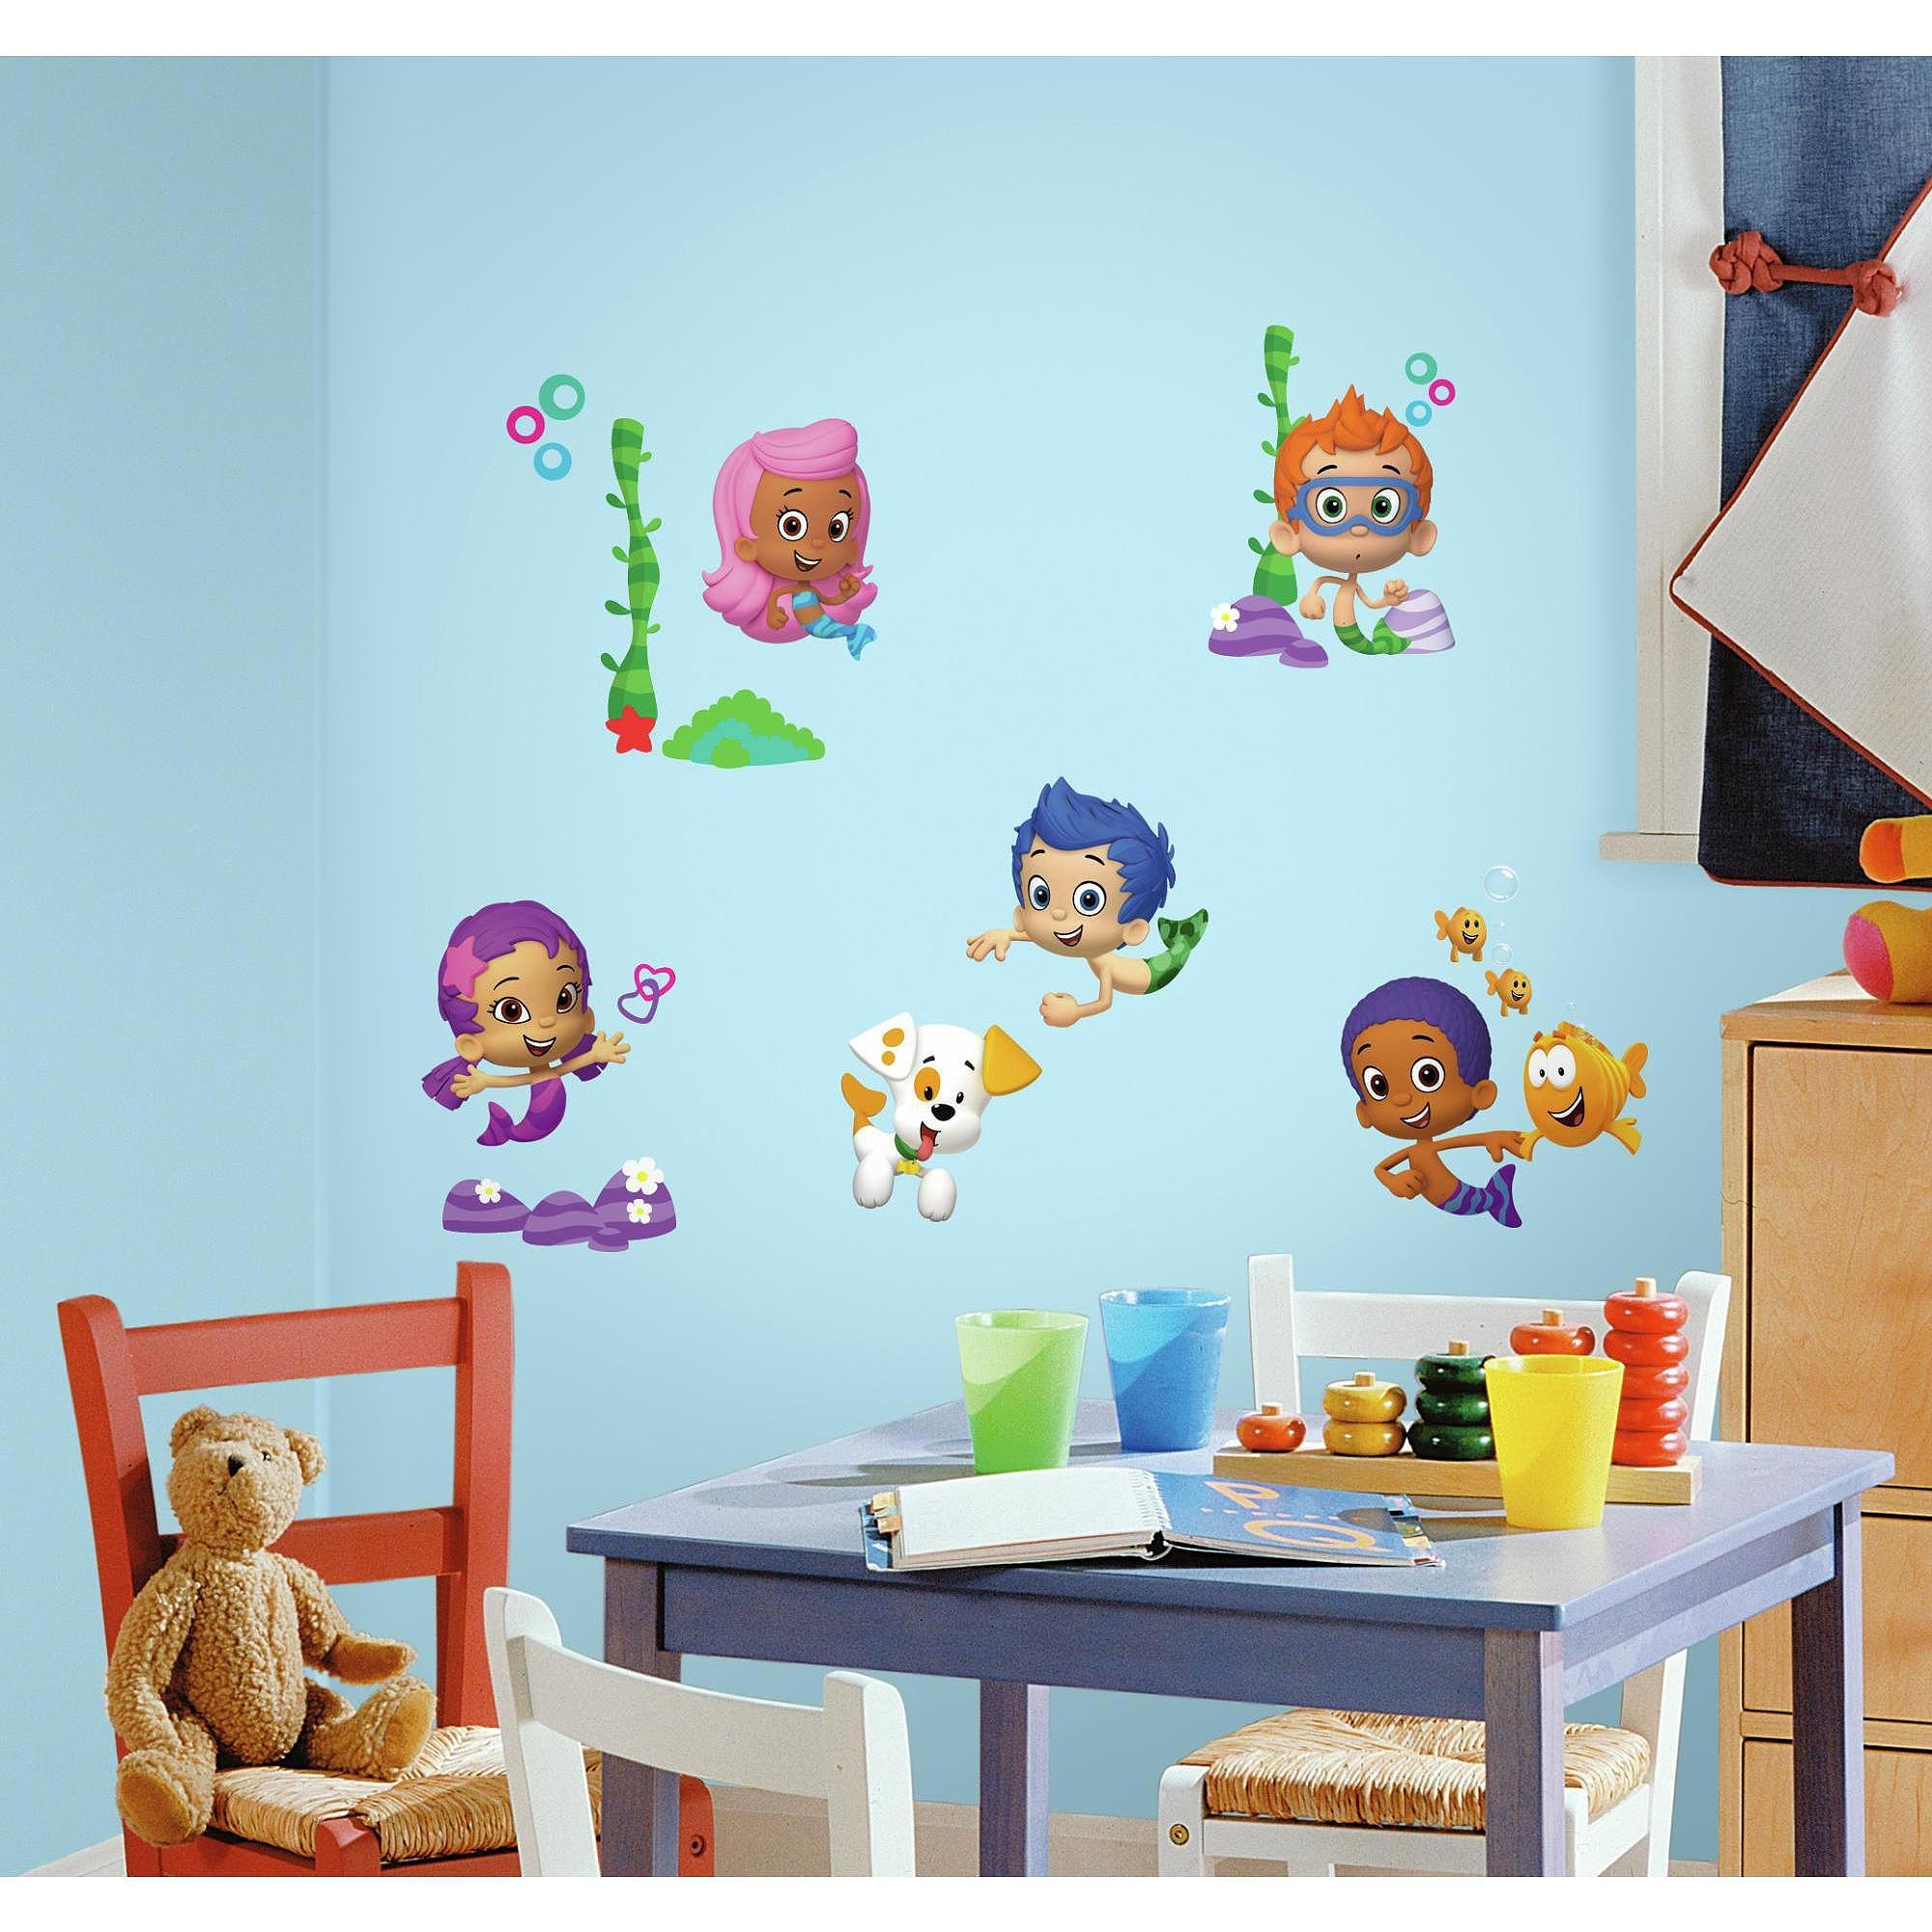 Bubble Guppies Peel And Stick Wall Decals – Walmart For Walmart Wall Stickers (View 5 of 20)